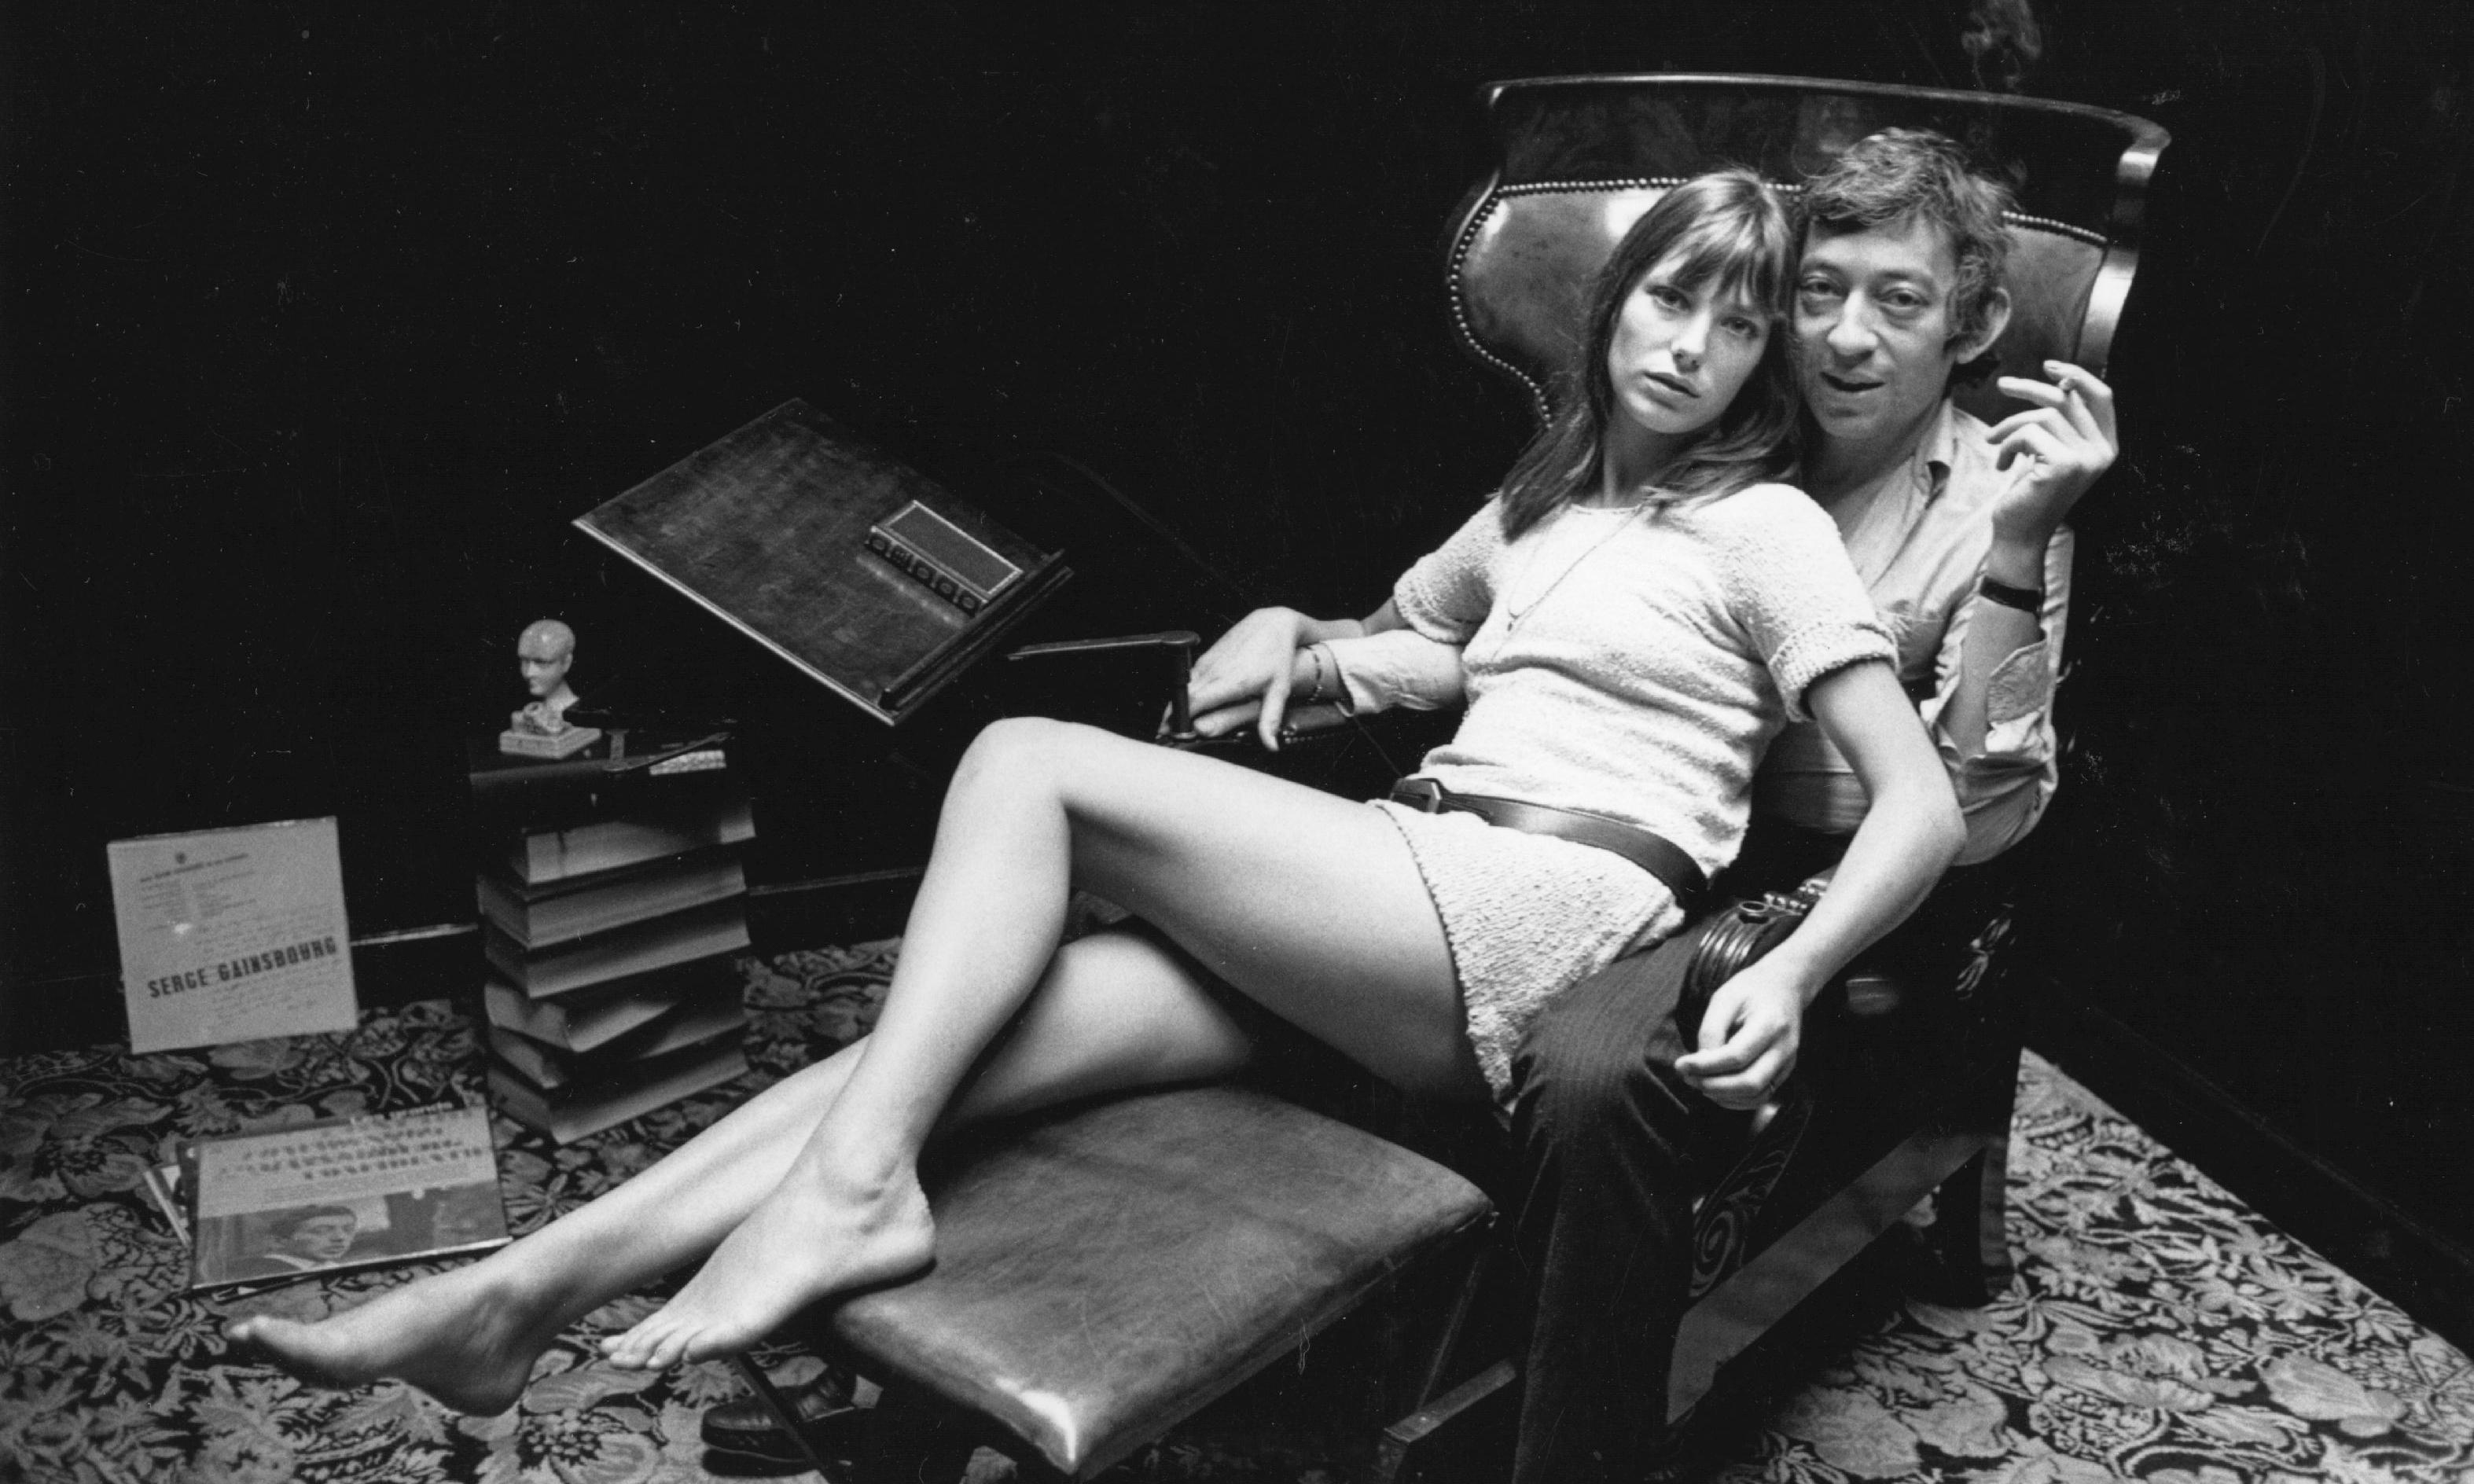 Love v l'amour: is English destroying the world's sexiest language?